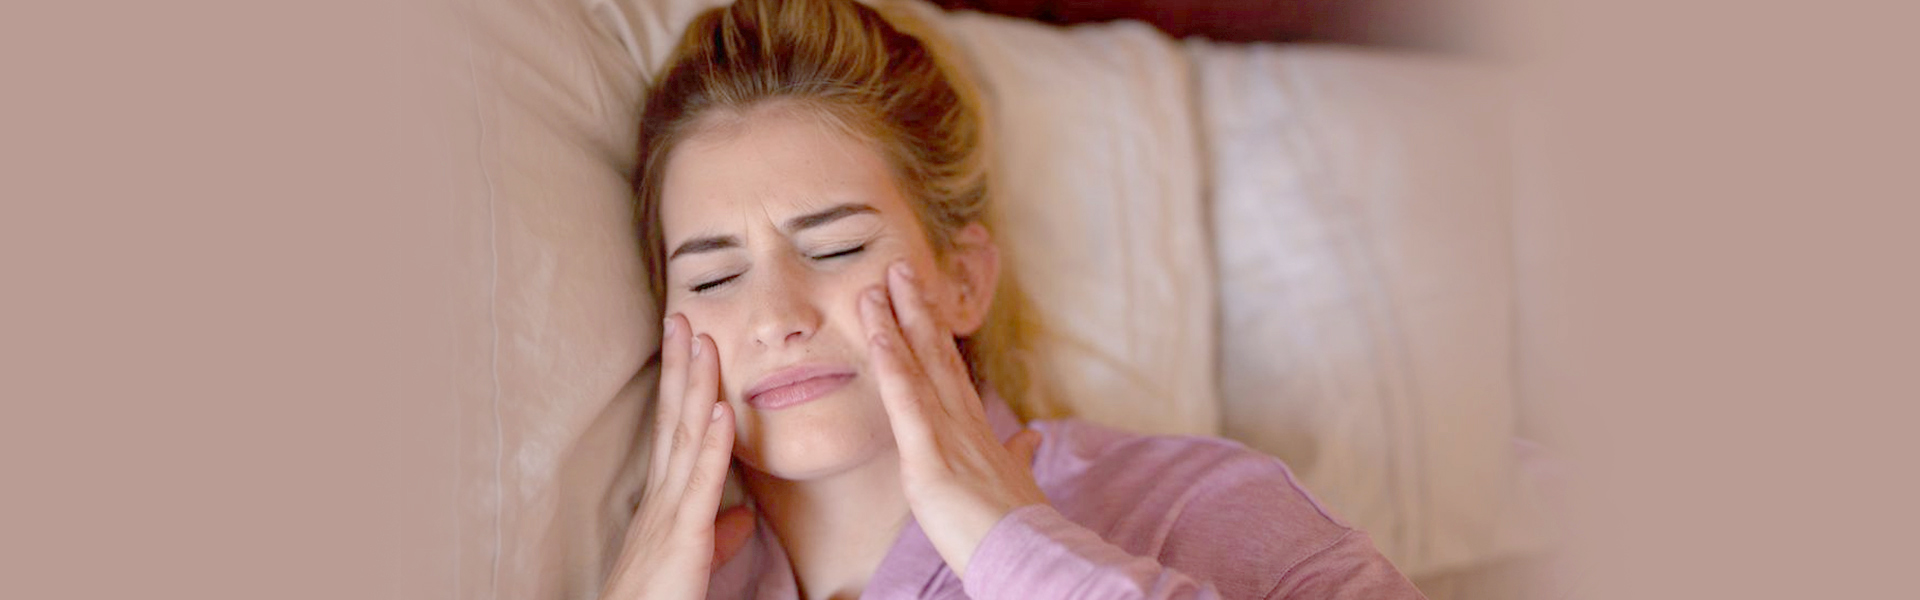 7 Tips to Fight Bruxism